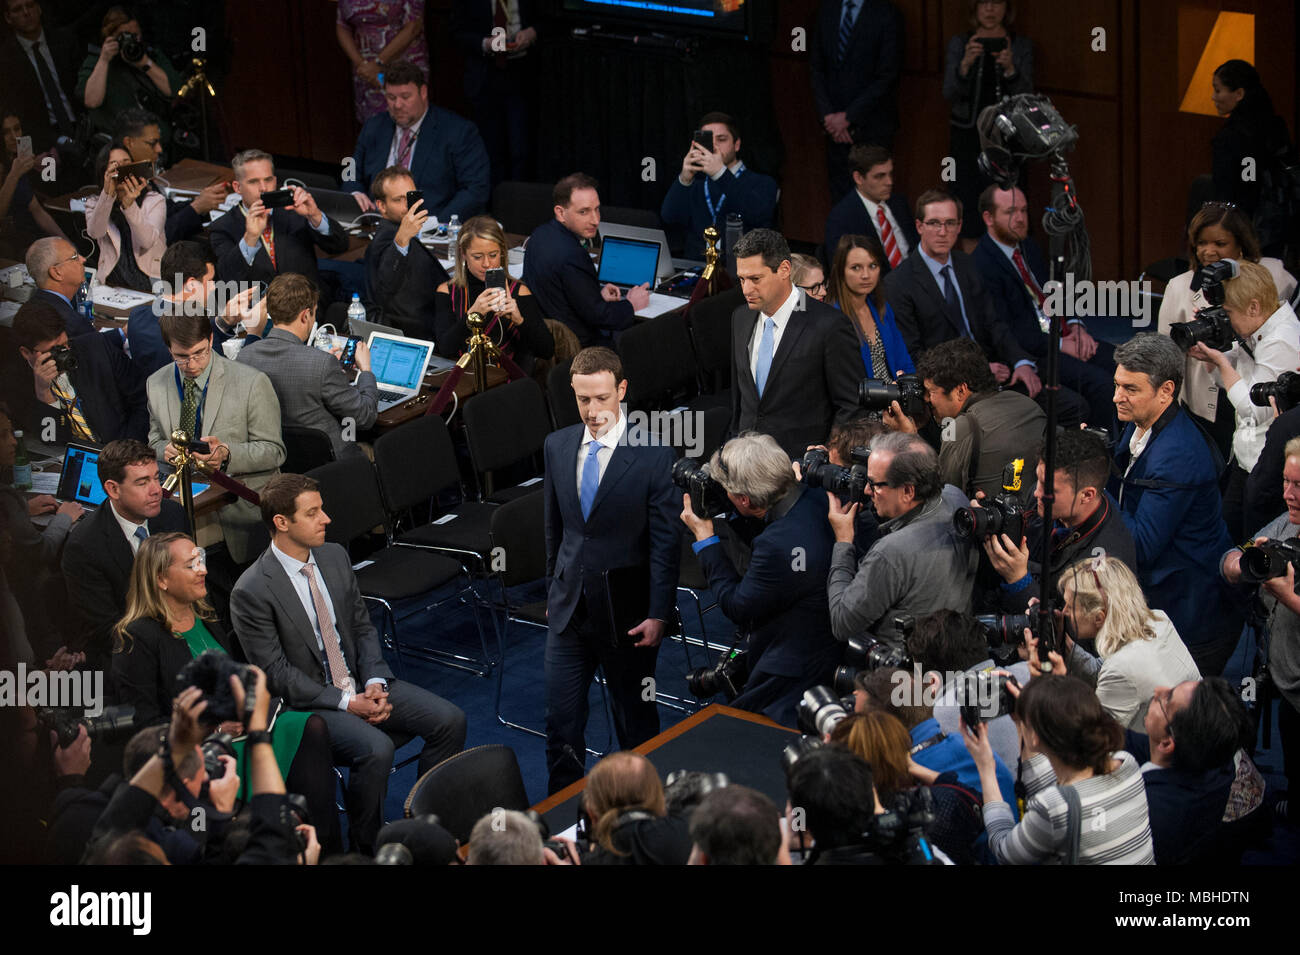 facebook office in usa. Washington, DC, USA. 10th April, 2018. Facebook CEO Mark Zuckerberg Arrives To Testify Before A Joint Hearing With The Senate Judiciary Committee On Office In Usa